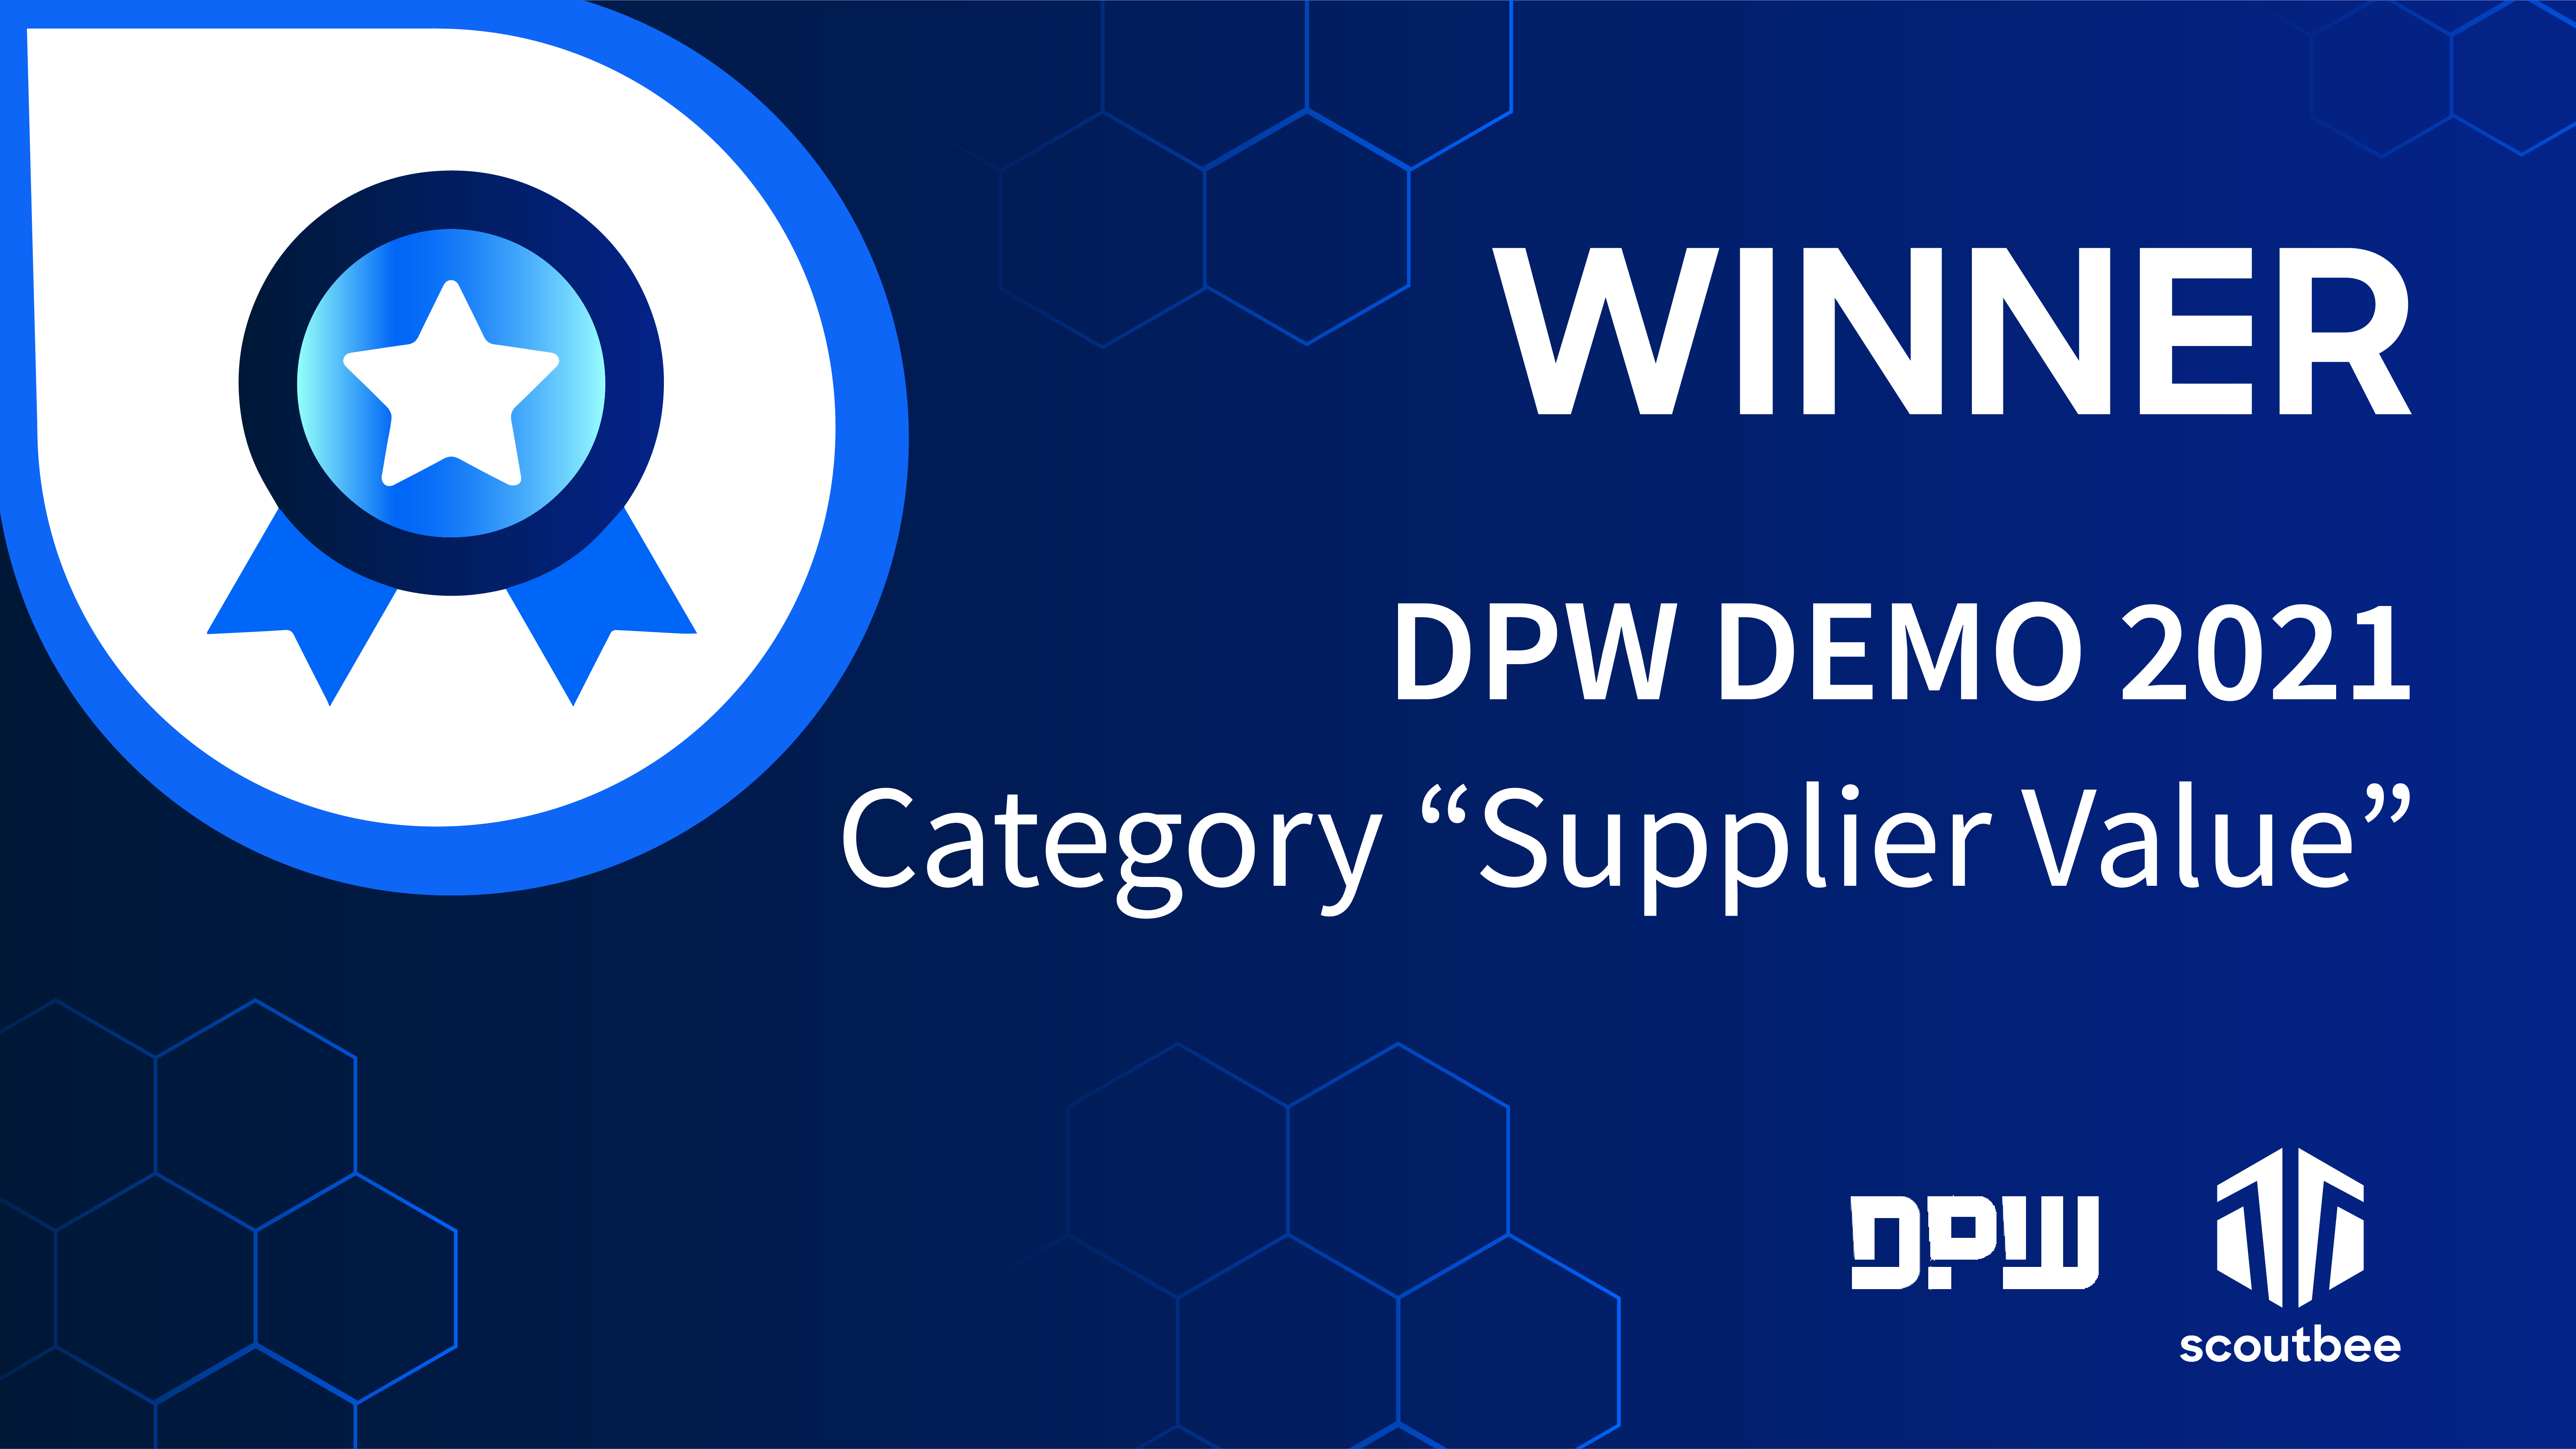 """scoutbee wins DPW Demo 2021 award in the category """"Supplier Value"""""""